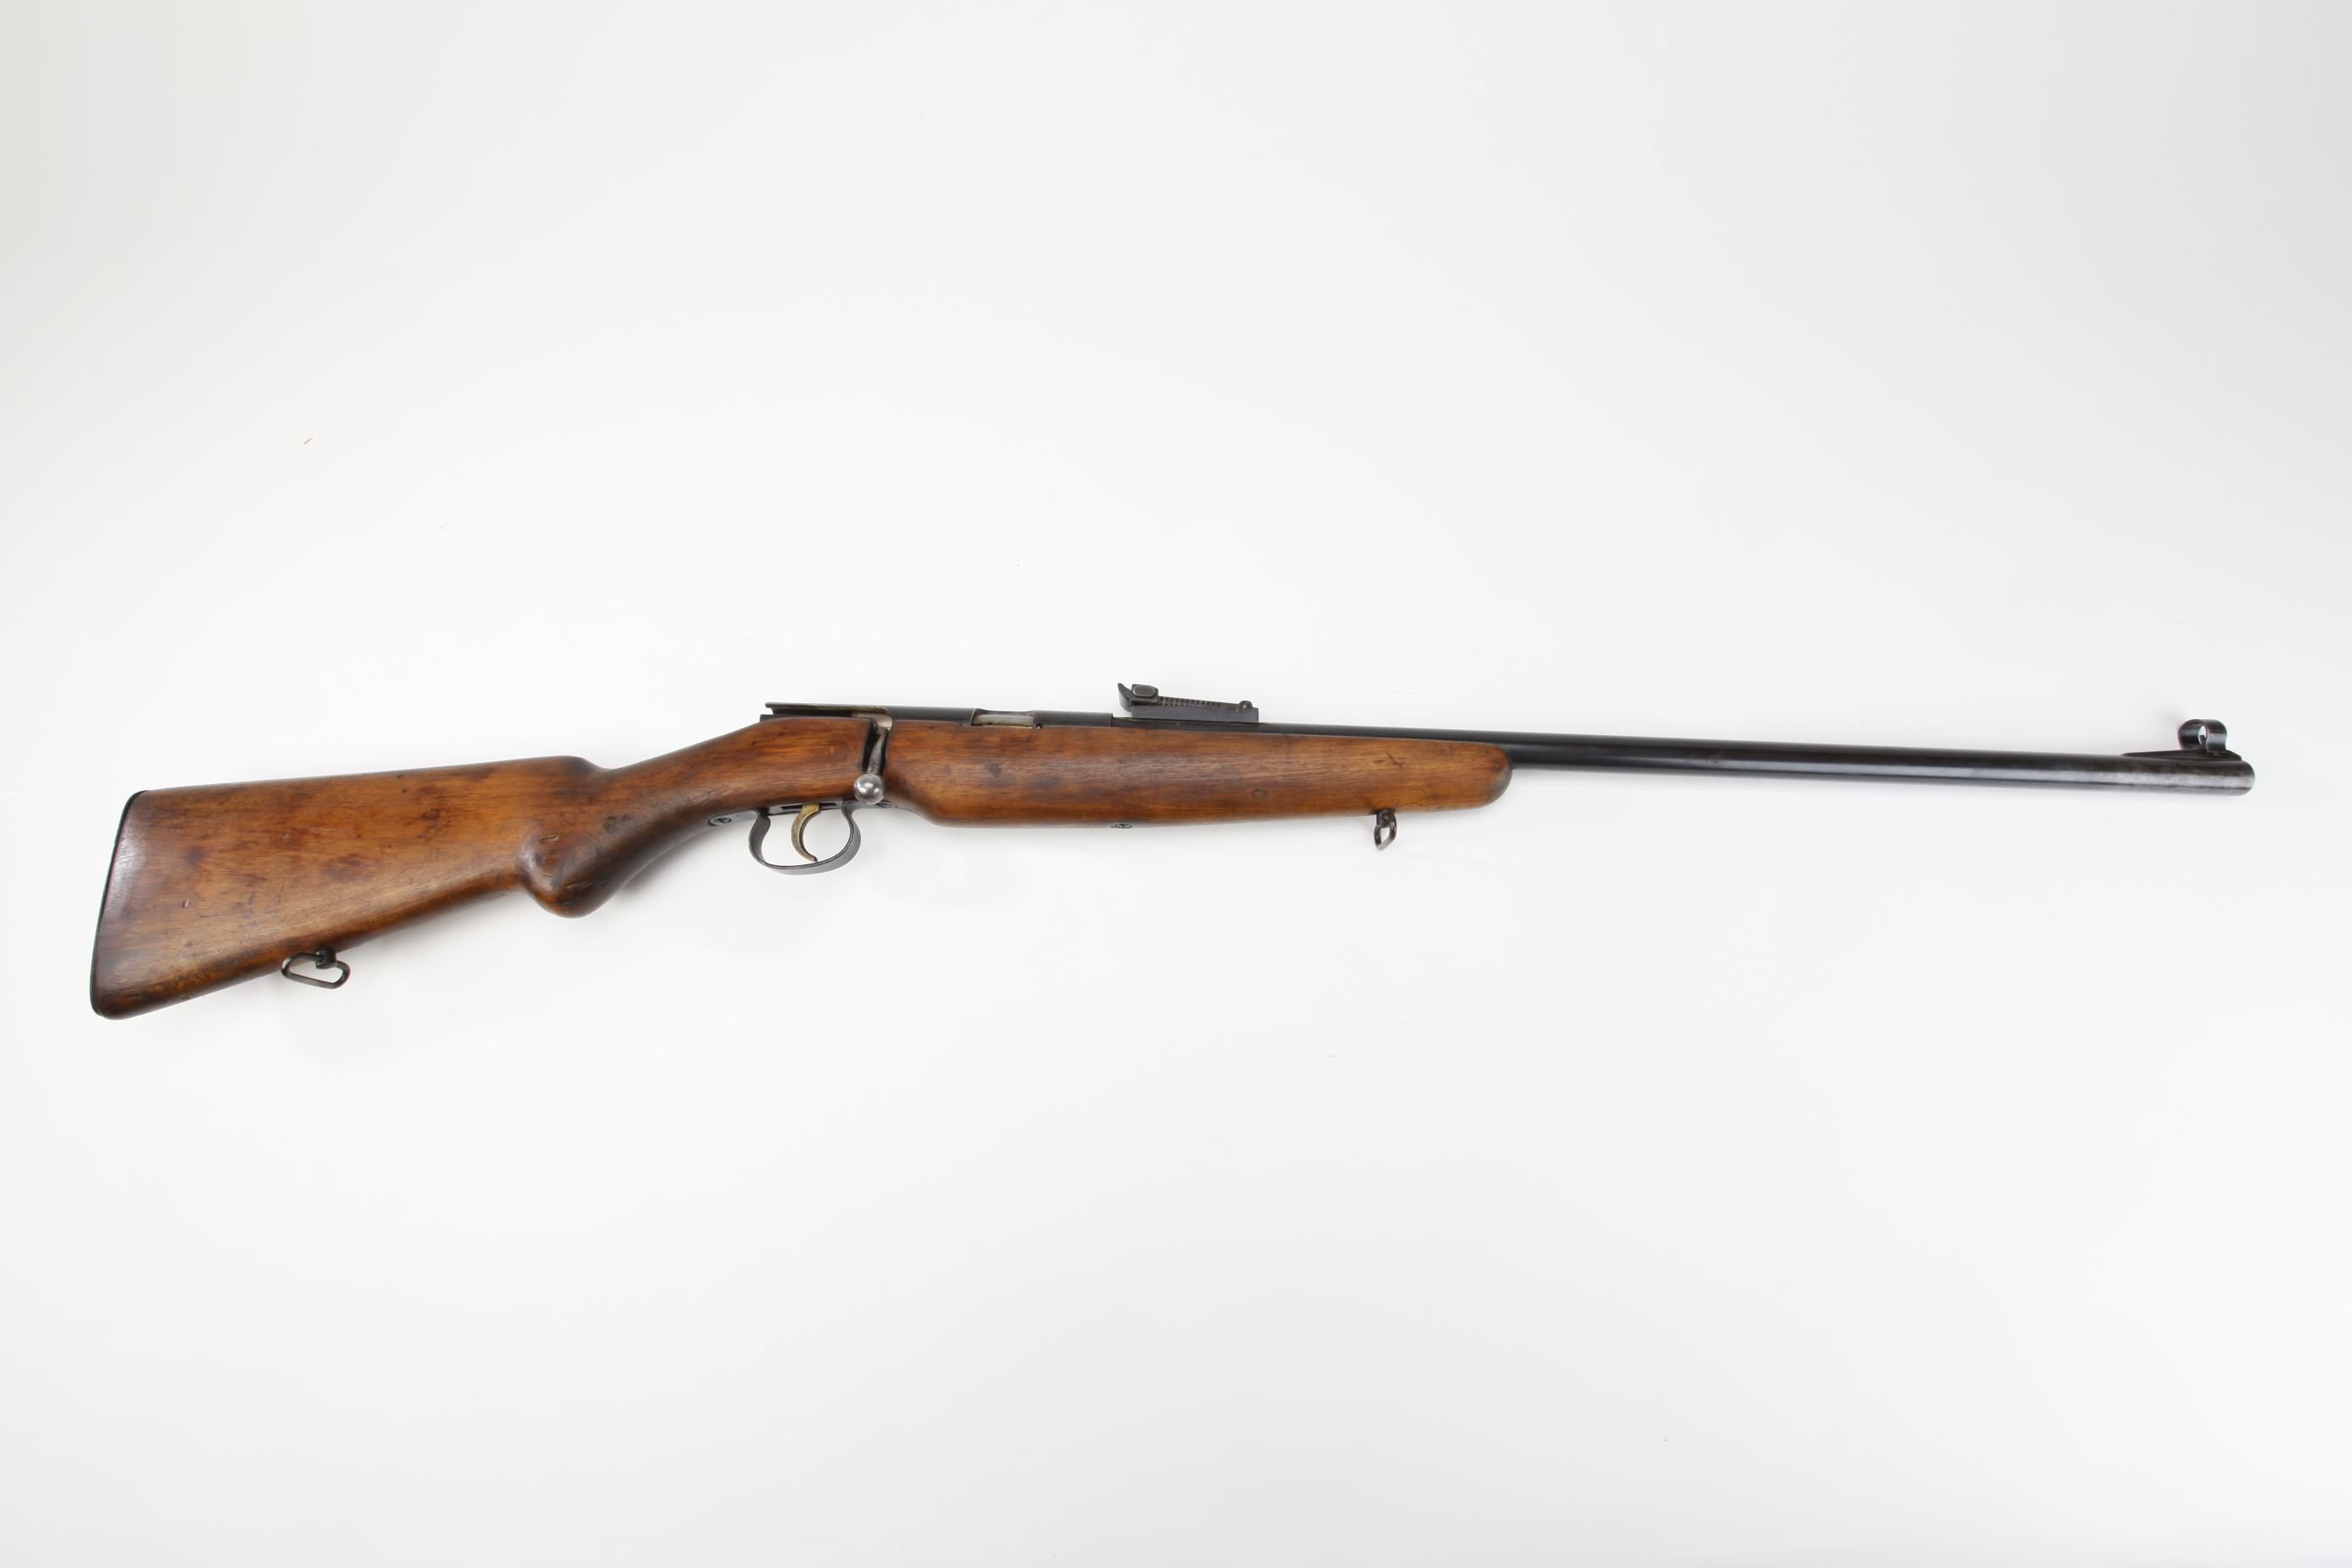 TOZ 8 Bolt Action Target Rifle